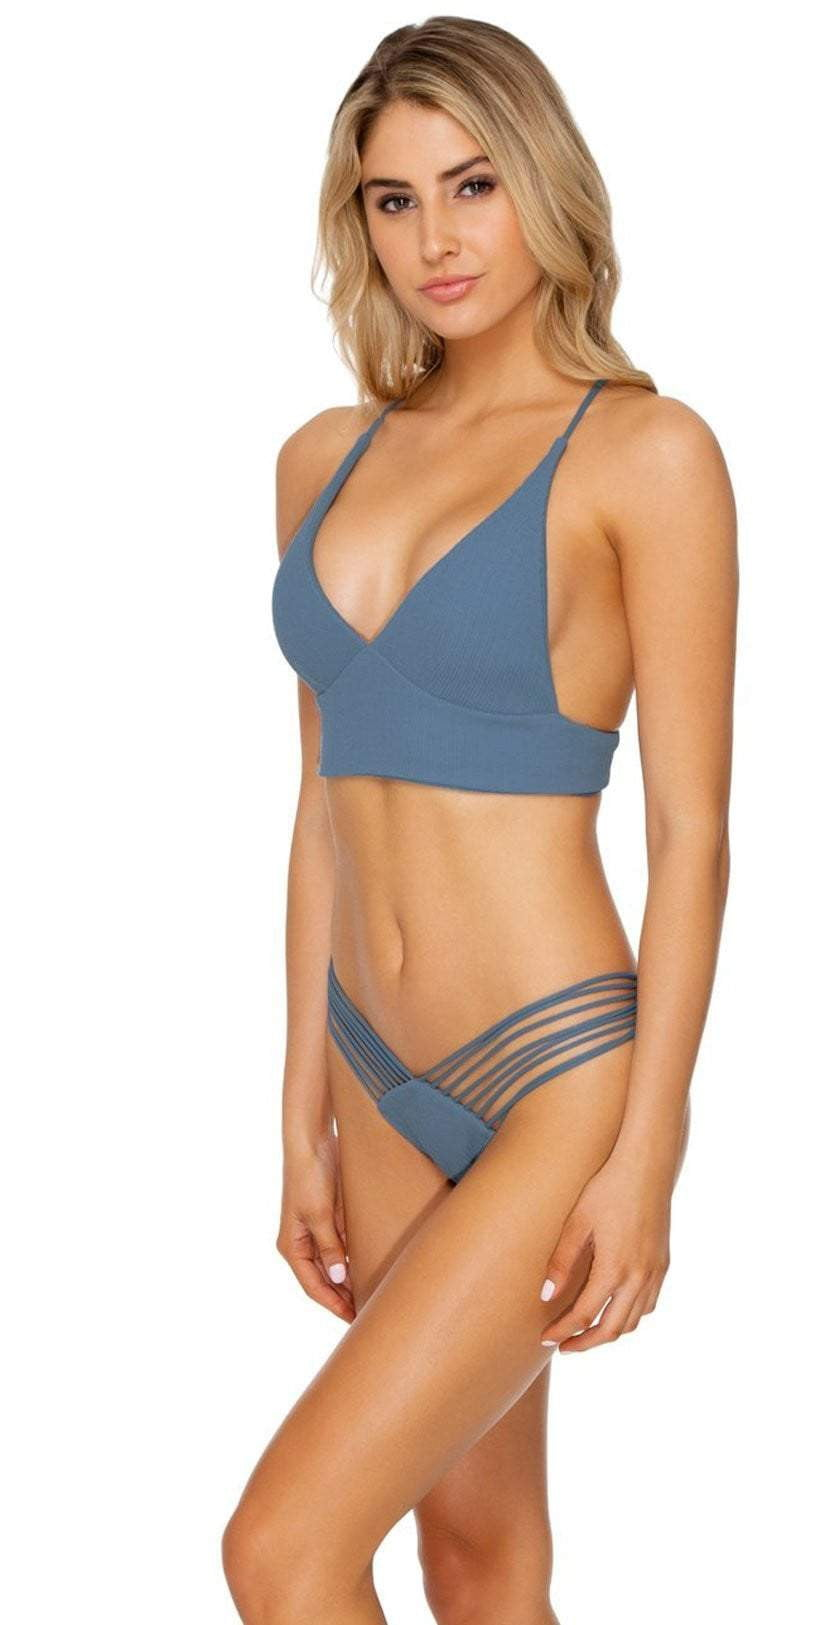 Luli Fama Strappy Brazilian Bikini Bottom in Olas Side View